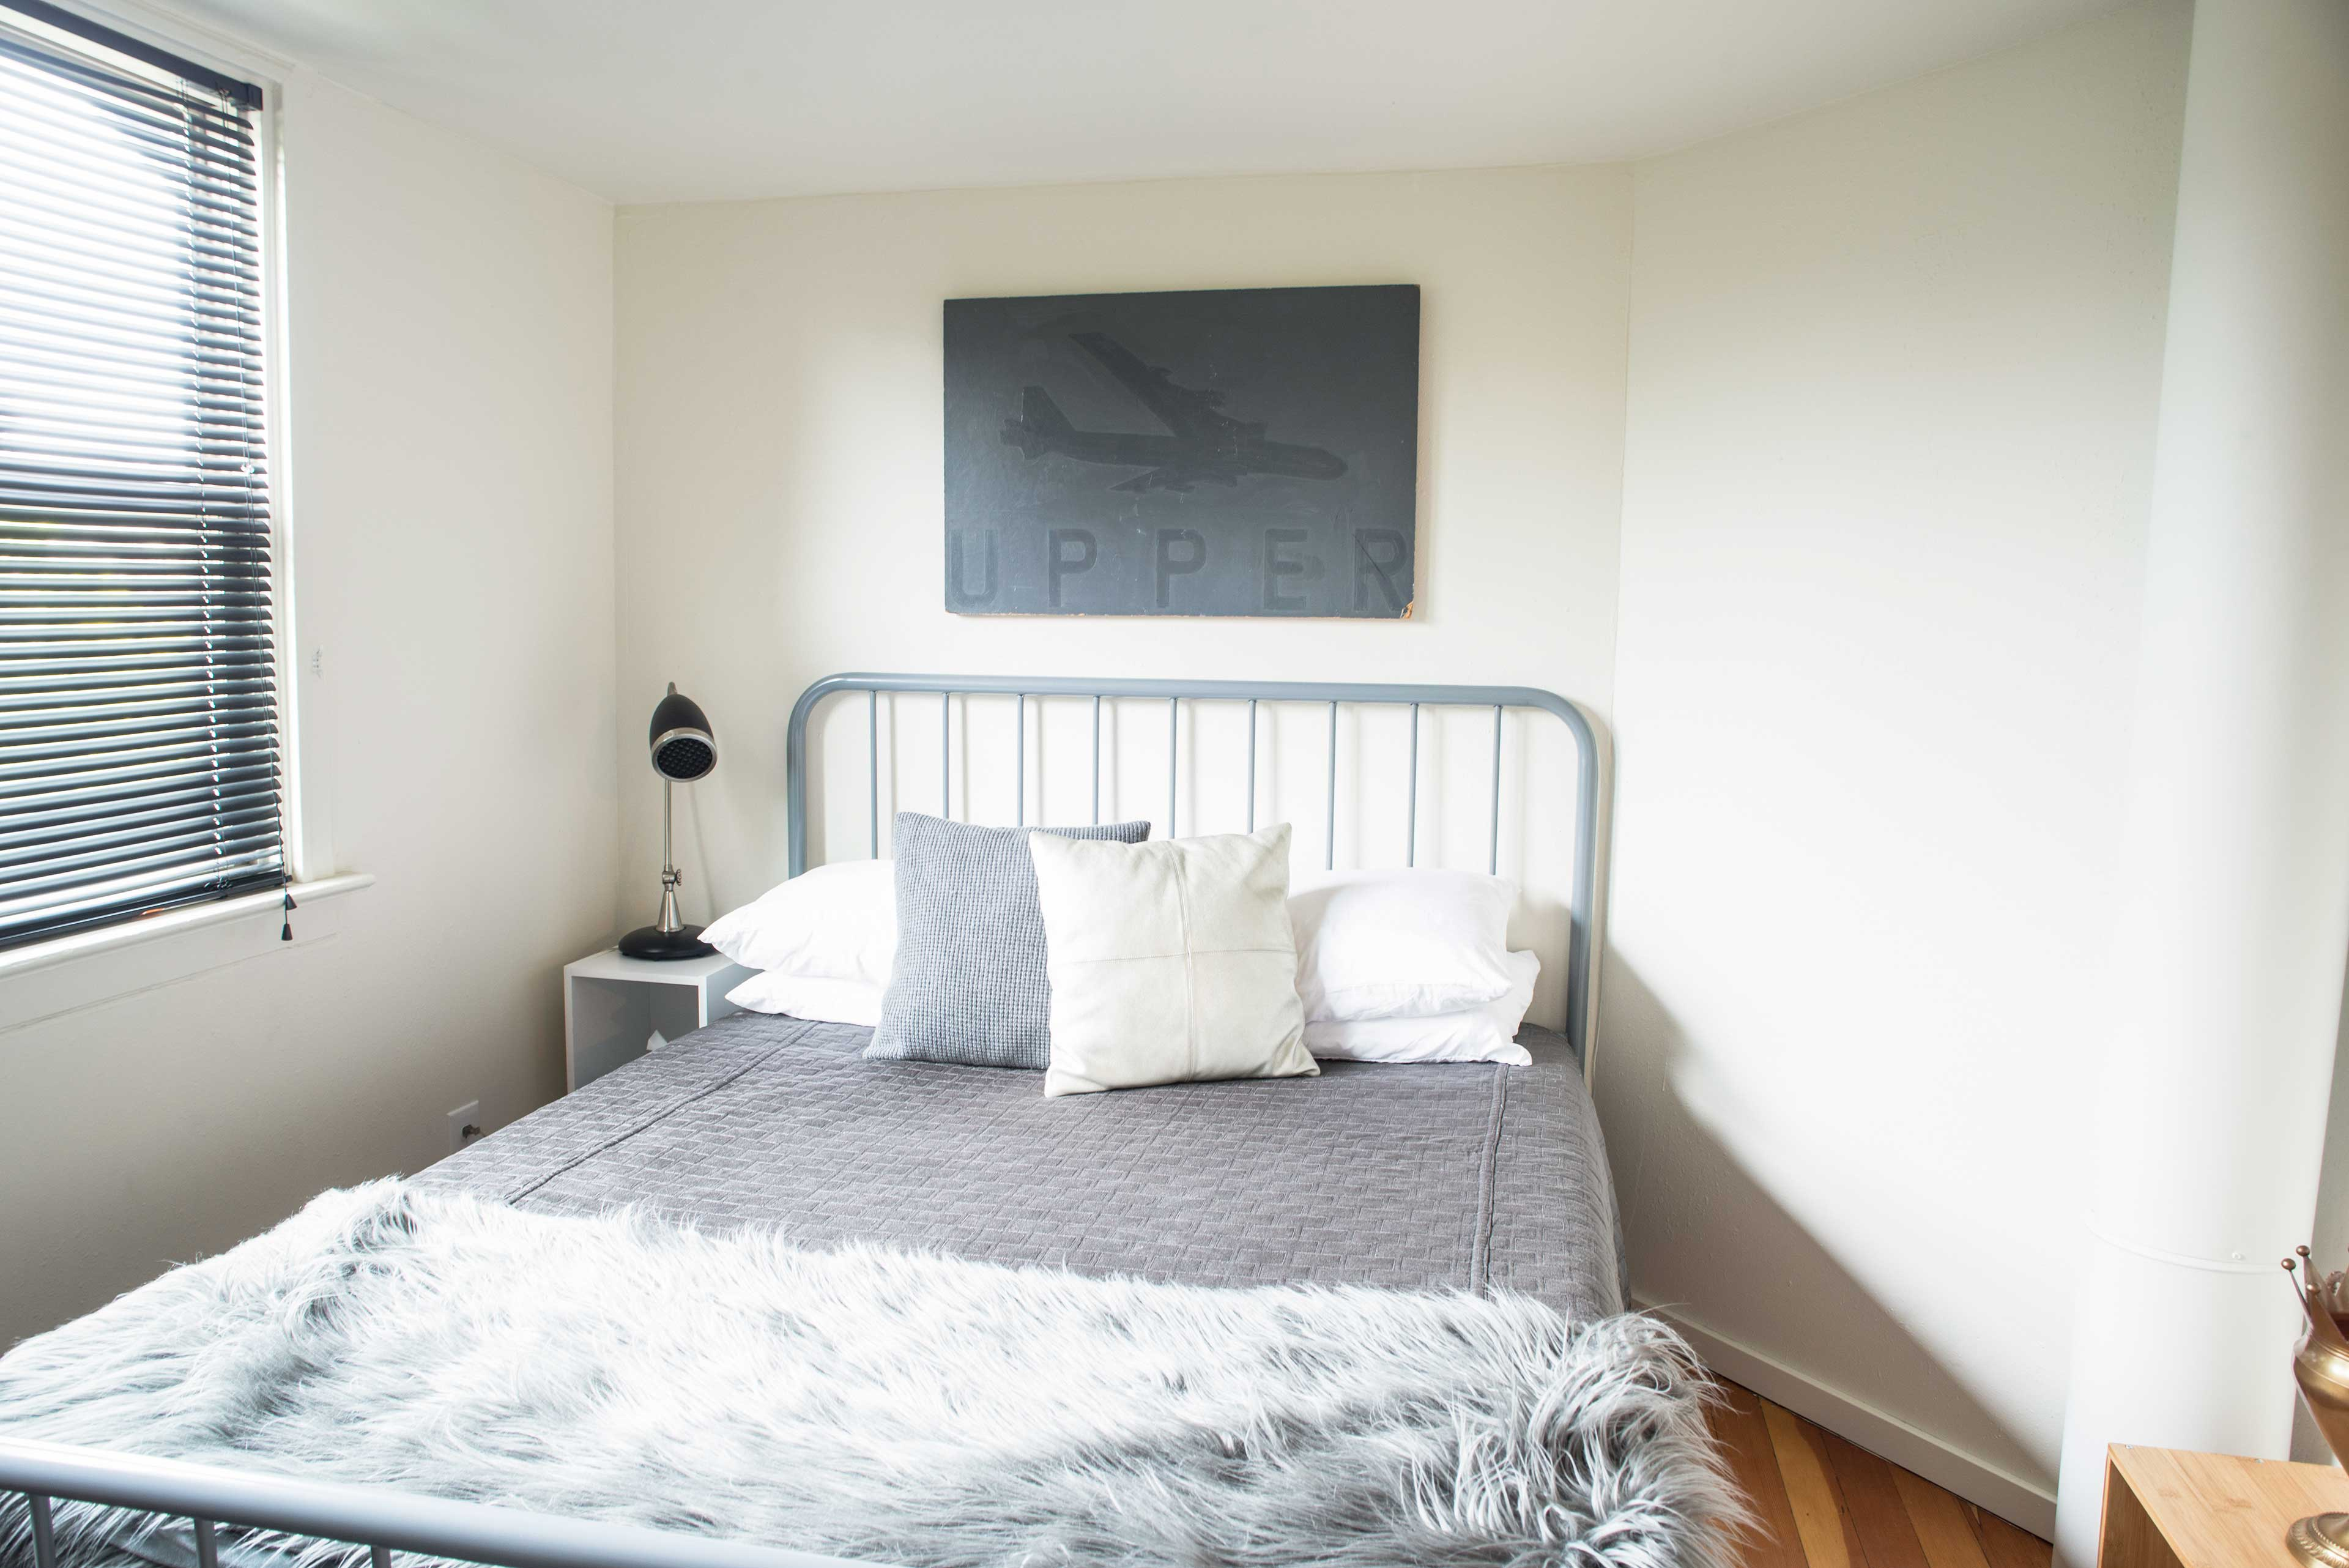 You'll find another queen bed in this room.